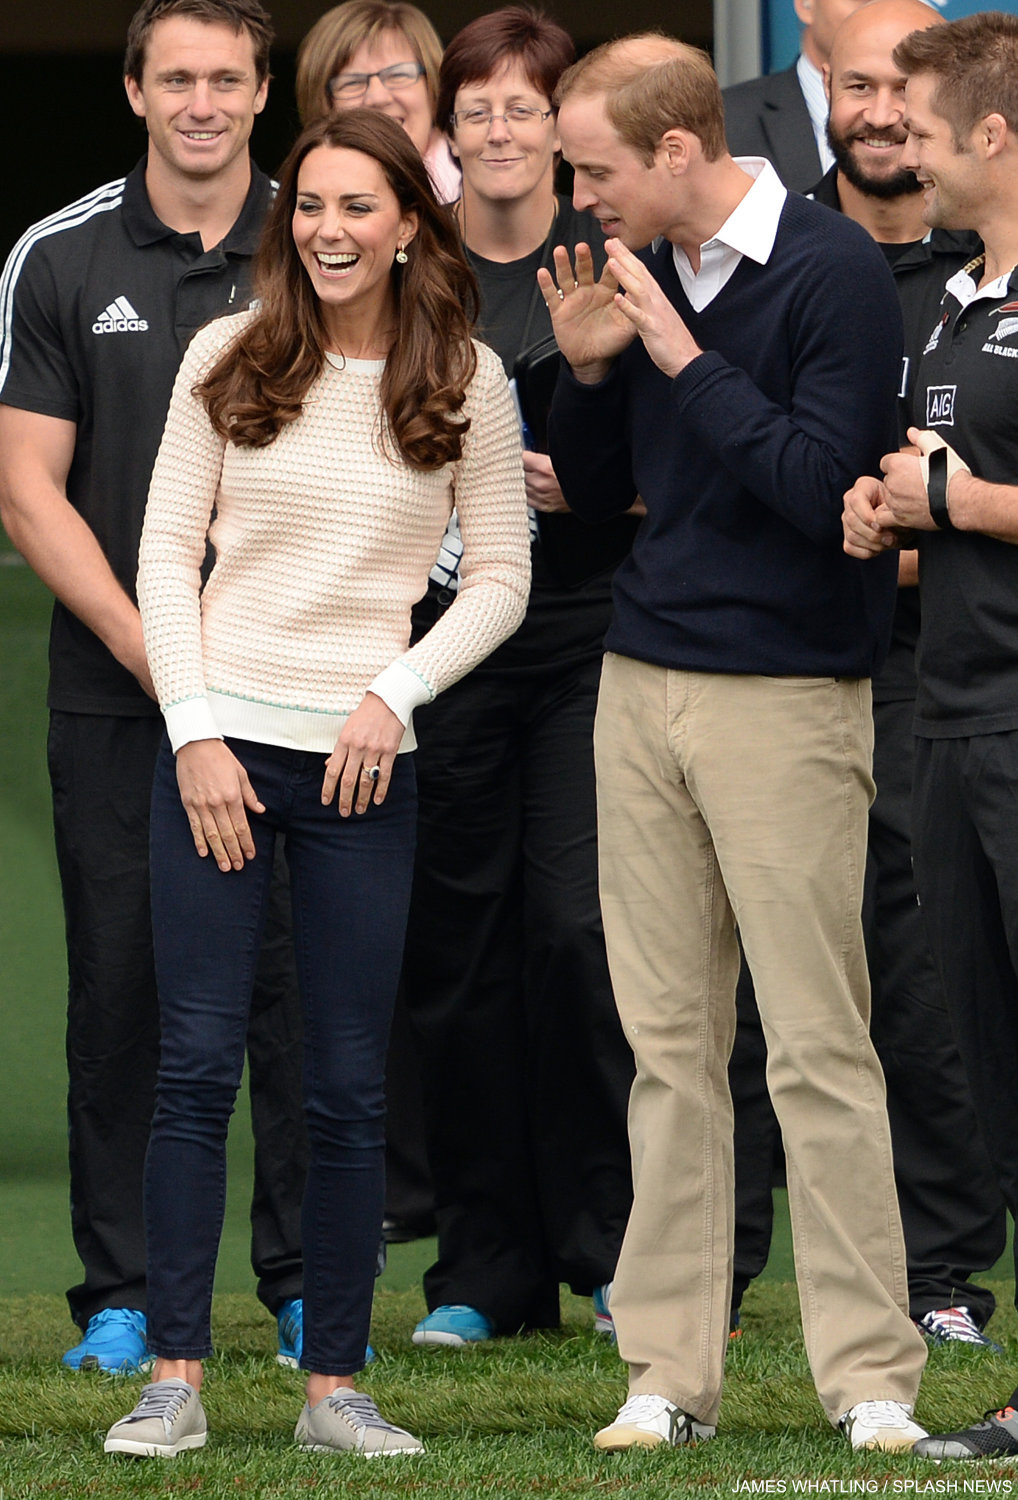 Kate Middleton wearing the Jonathan Saunders oval sweater in Dunedin, New Zealand to coach a rugby team